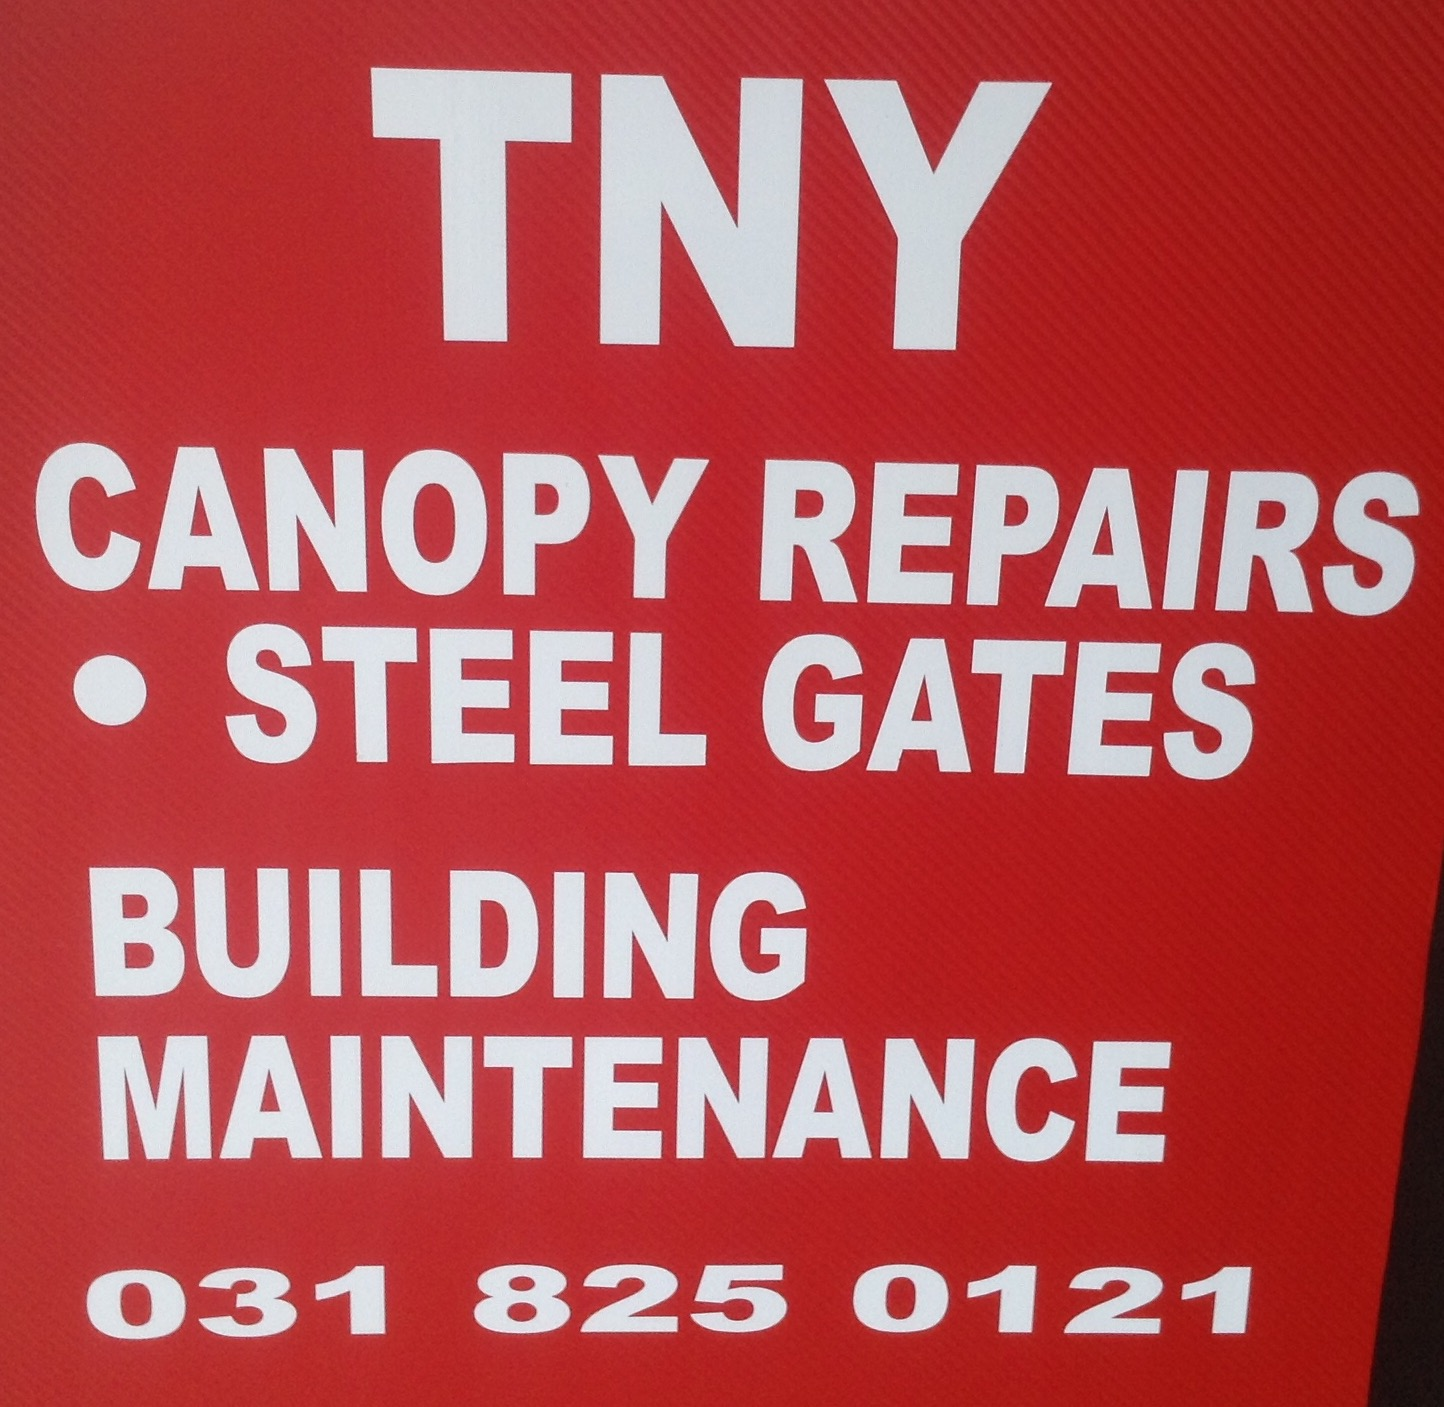 Repairs on all types of canopies.